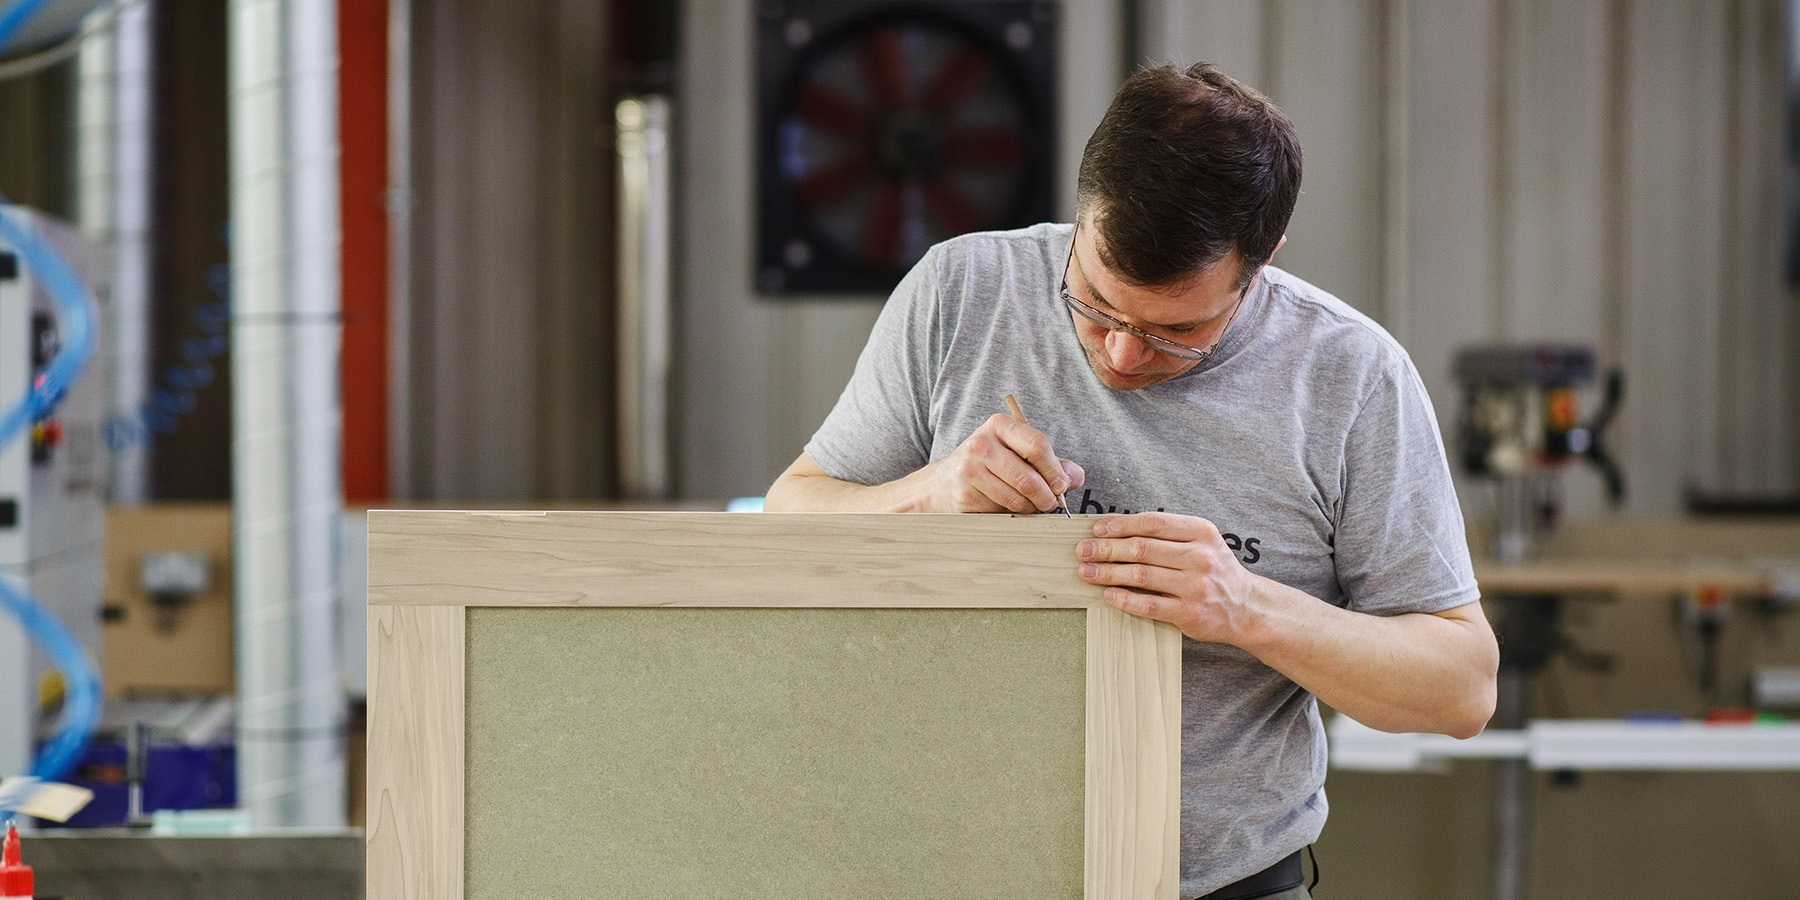 Burlanes Interiors - Burlanes design and make furniture and interiors of the highest quality. All of our furniture is handmade in our own Kent workshop